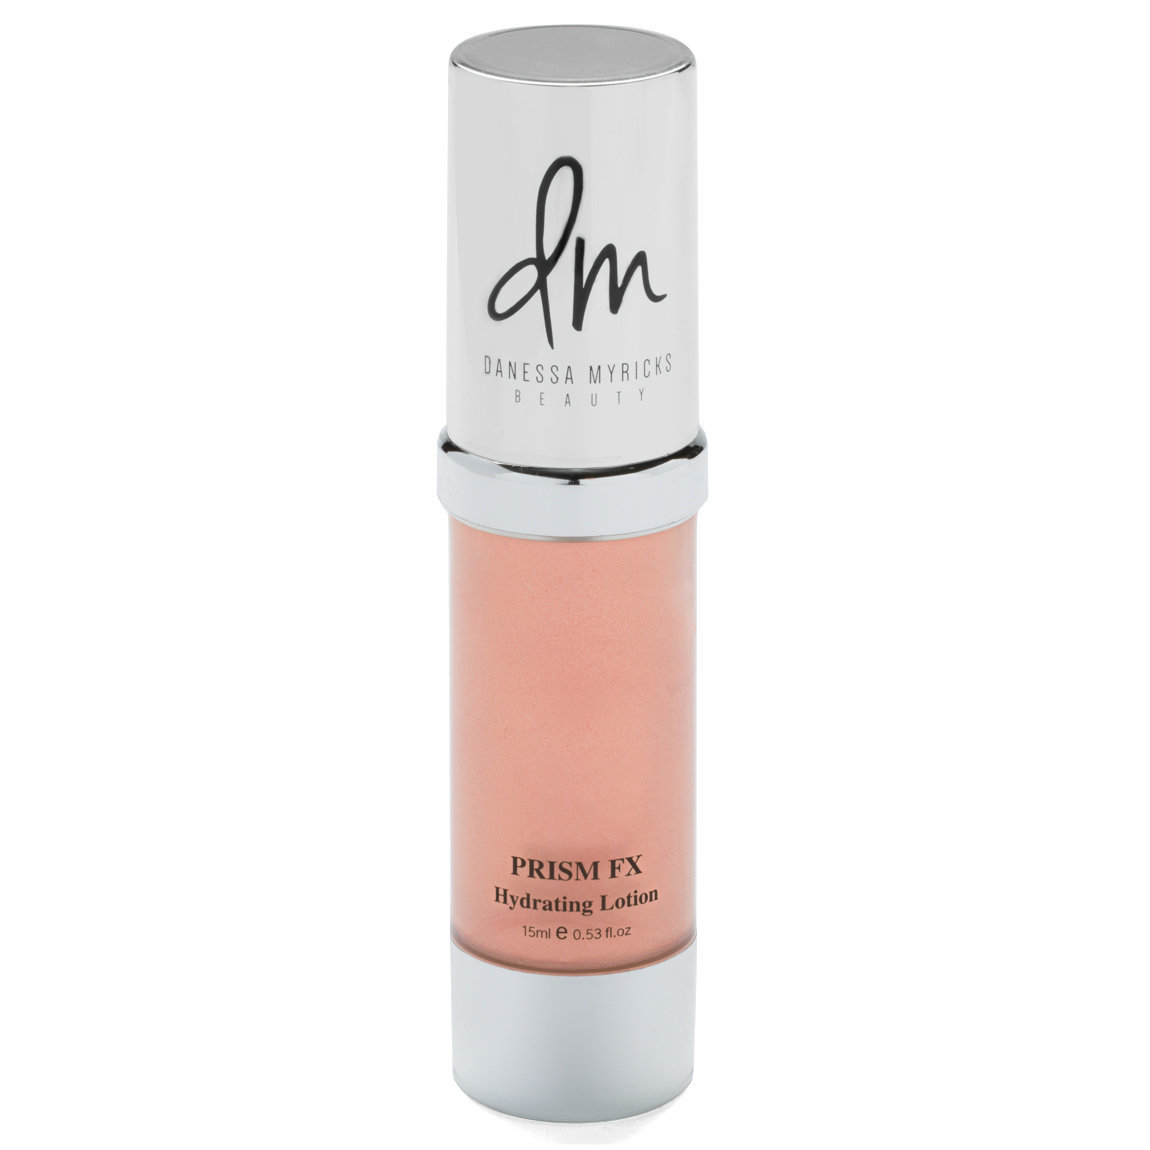 Danessa Myricks Beauty Prism FX Hydrating Lotion Peach